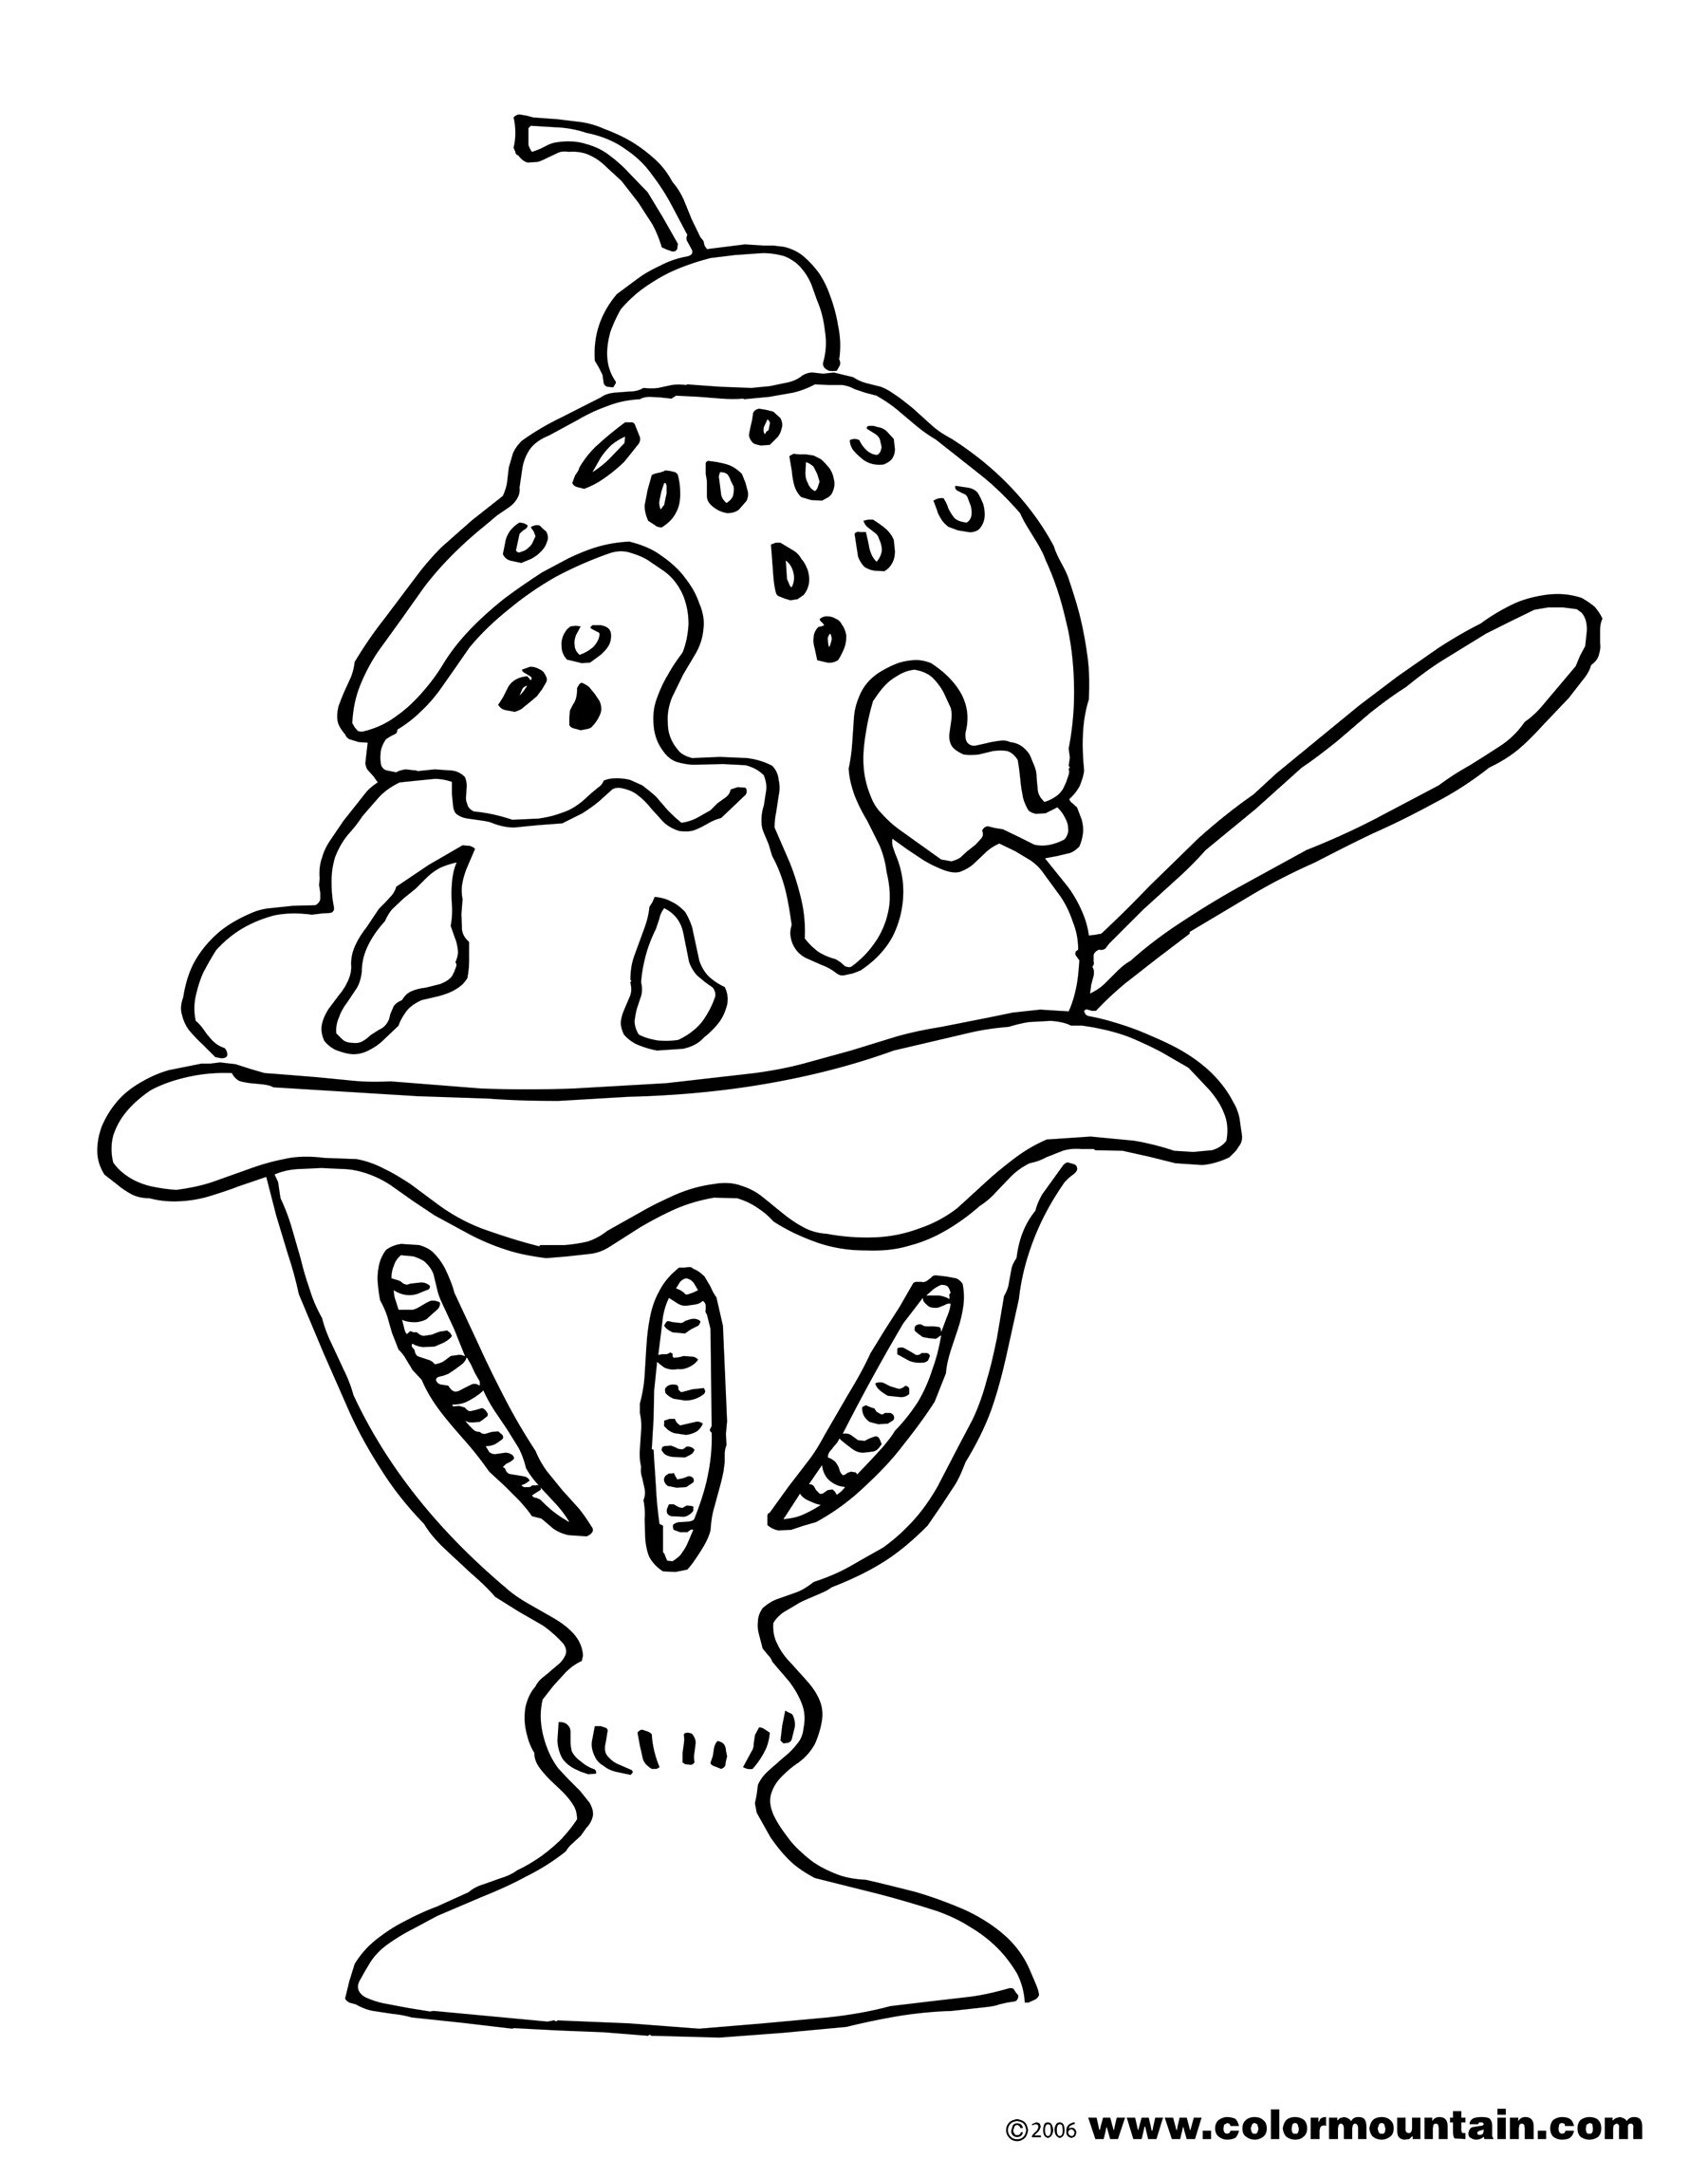 Sundae Coloring Page At Getcolorings